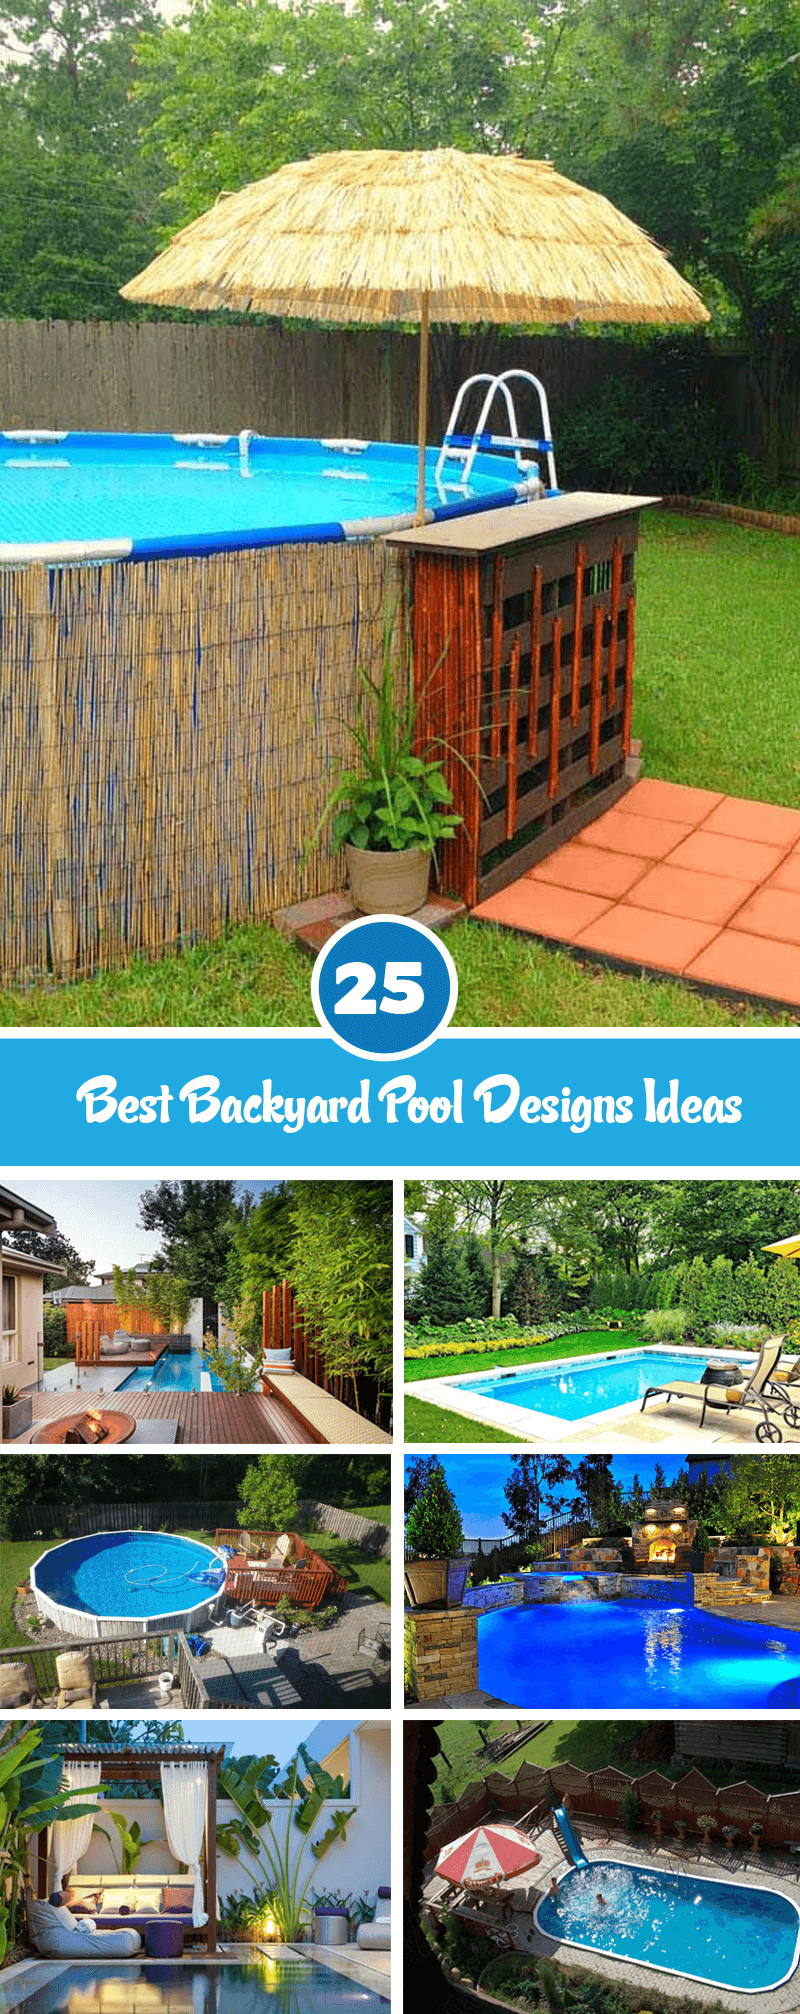 25 Great Backyard Pool Designs Ideas to Add Charm To Your Home ...